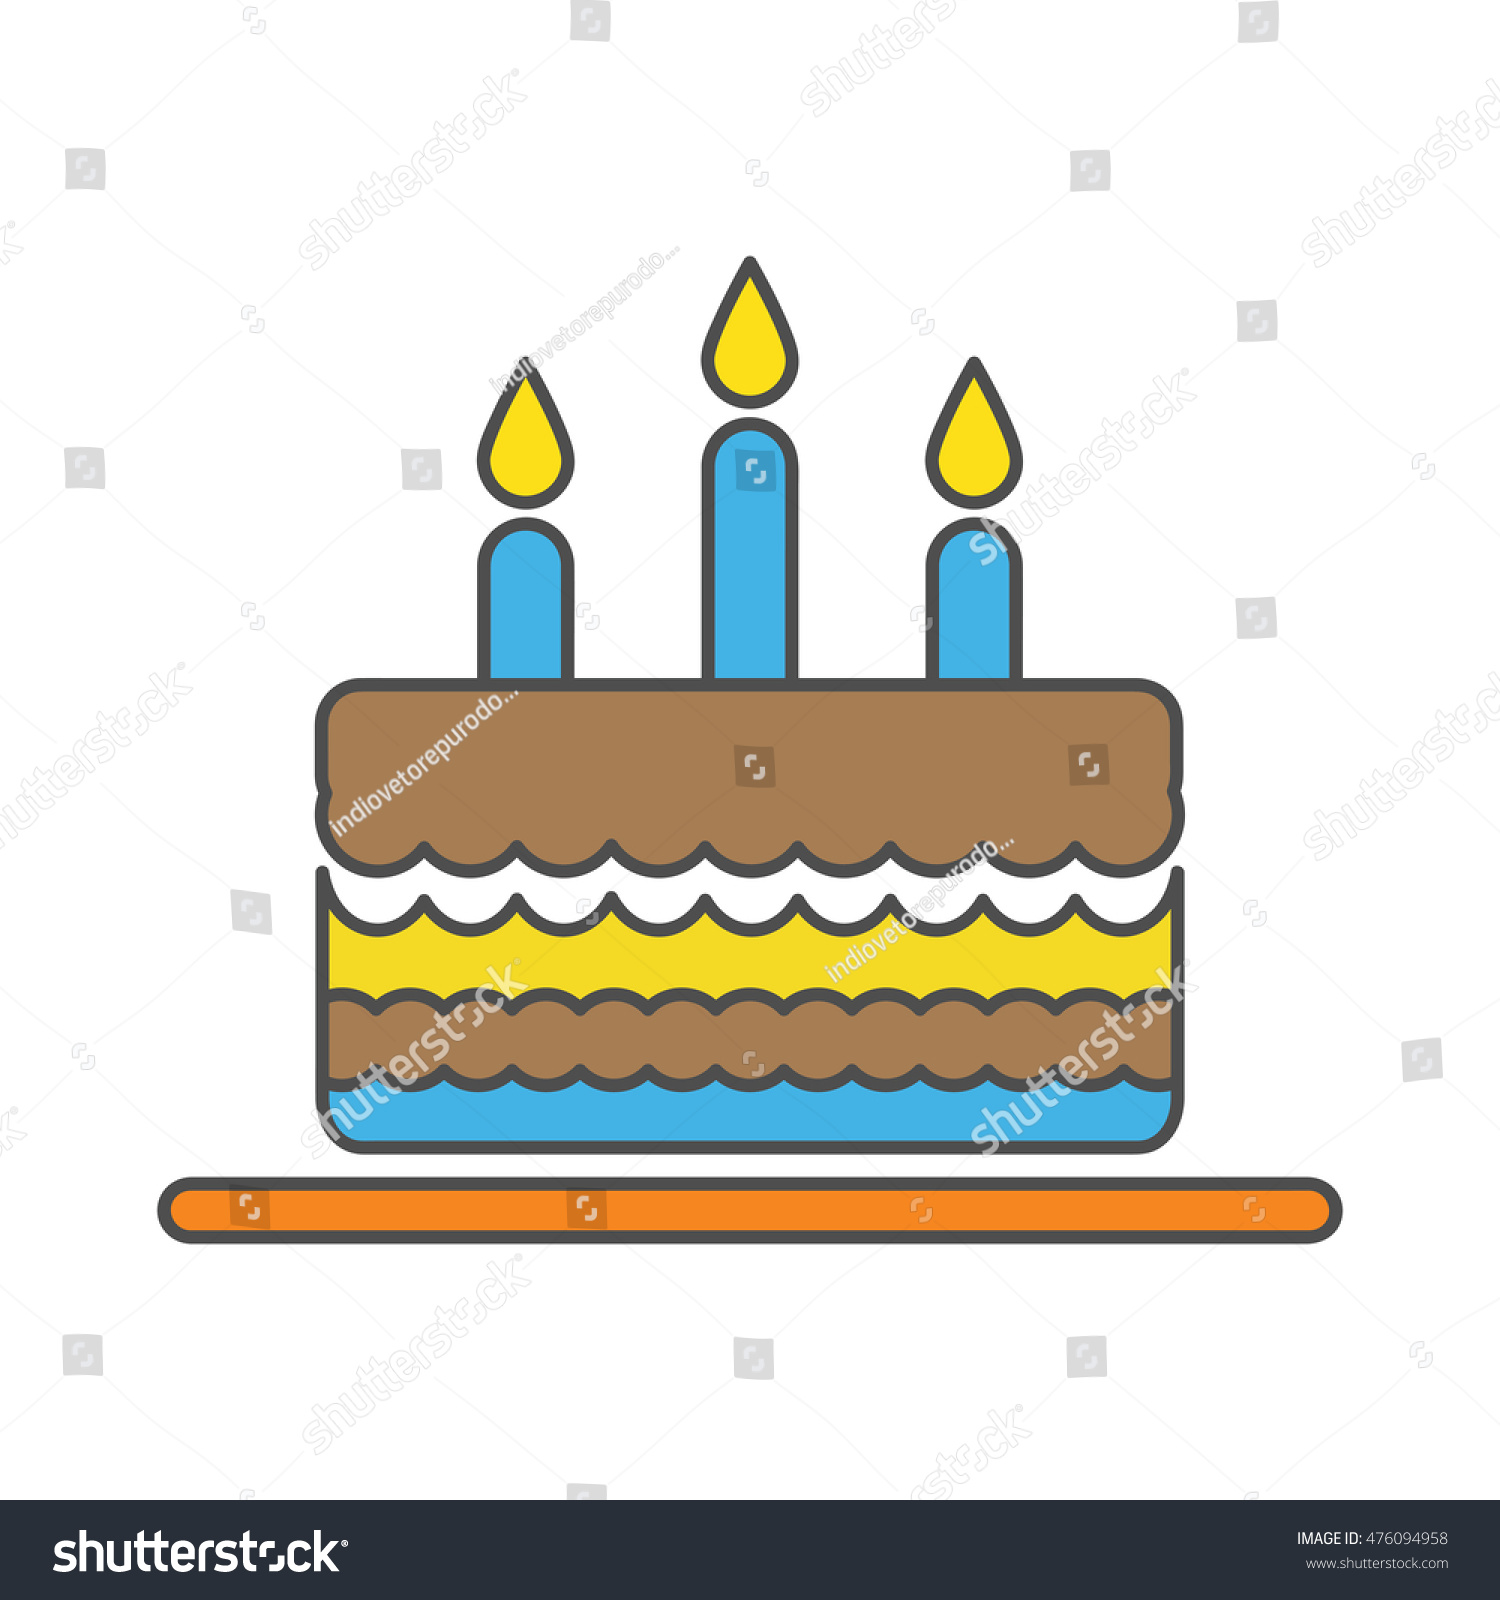 Birthday Cake Three Candles Stock Vector Royalty Free 476094958